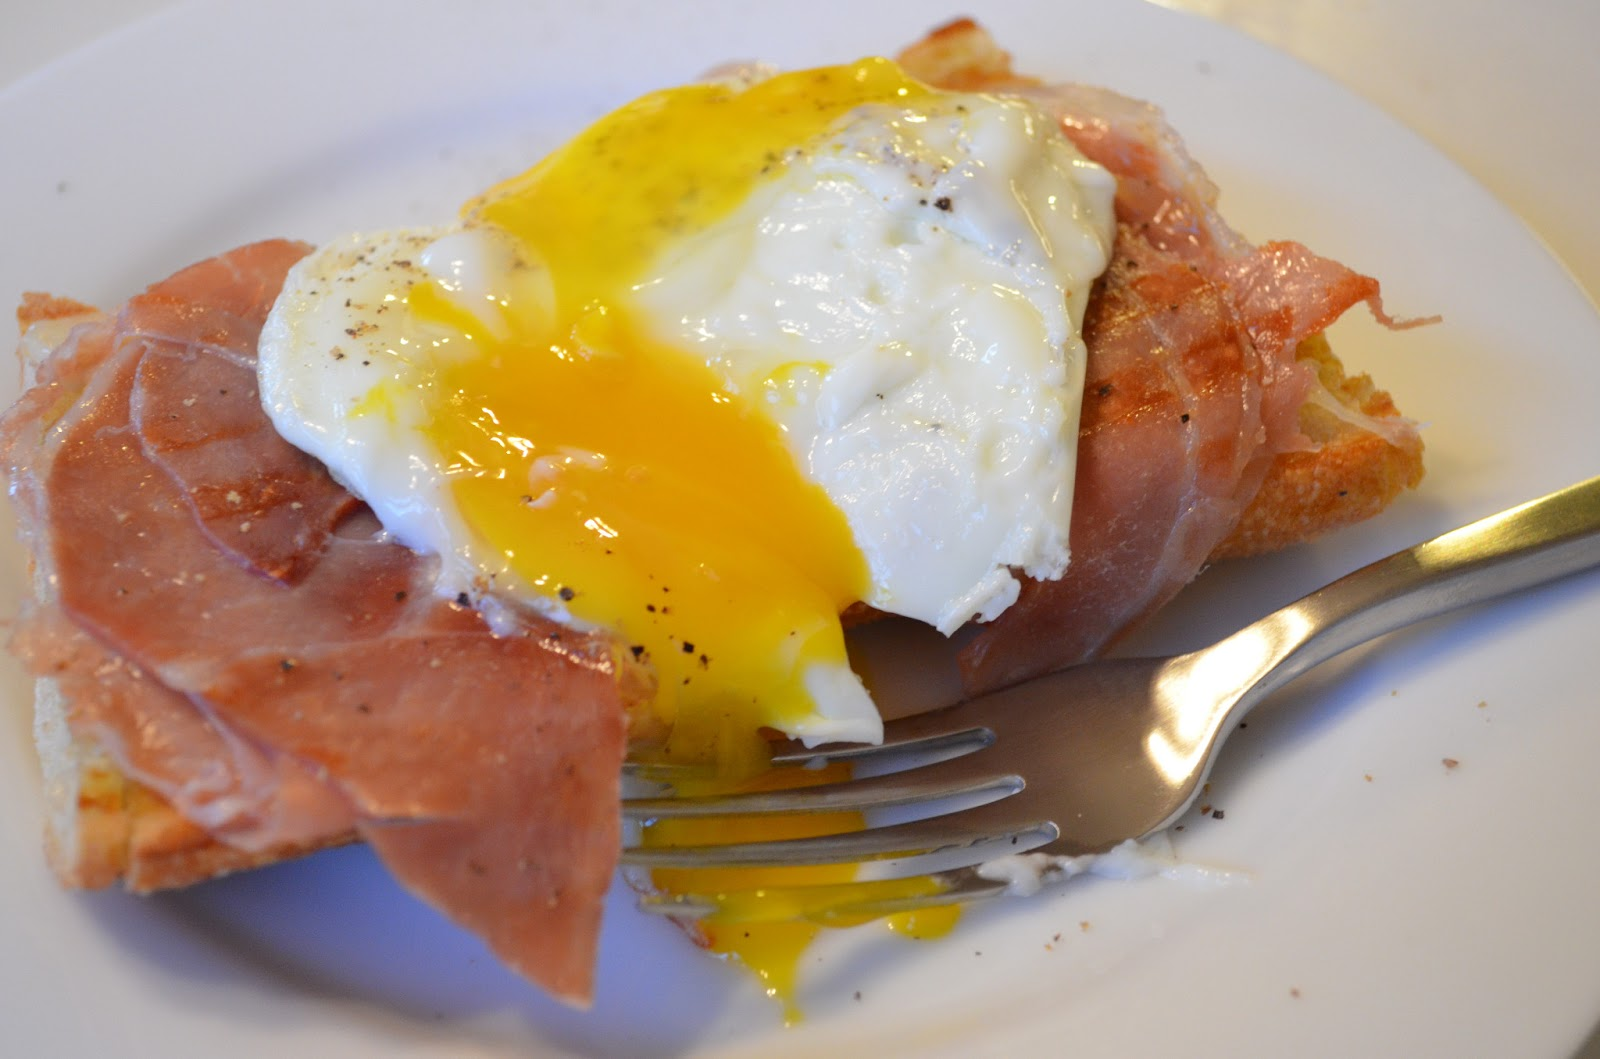 Life With Sol: Open Faced Prosciutto and Egg Sandwich